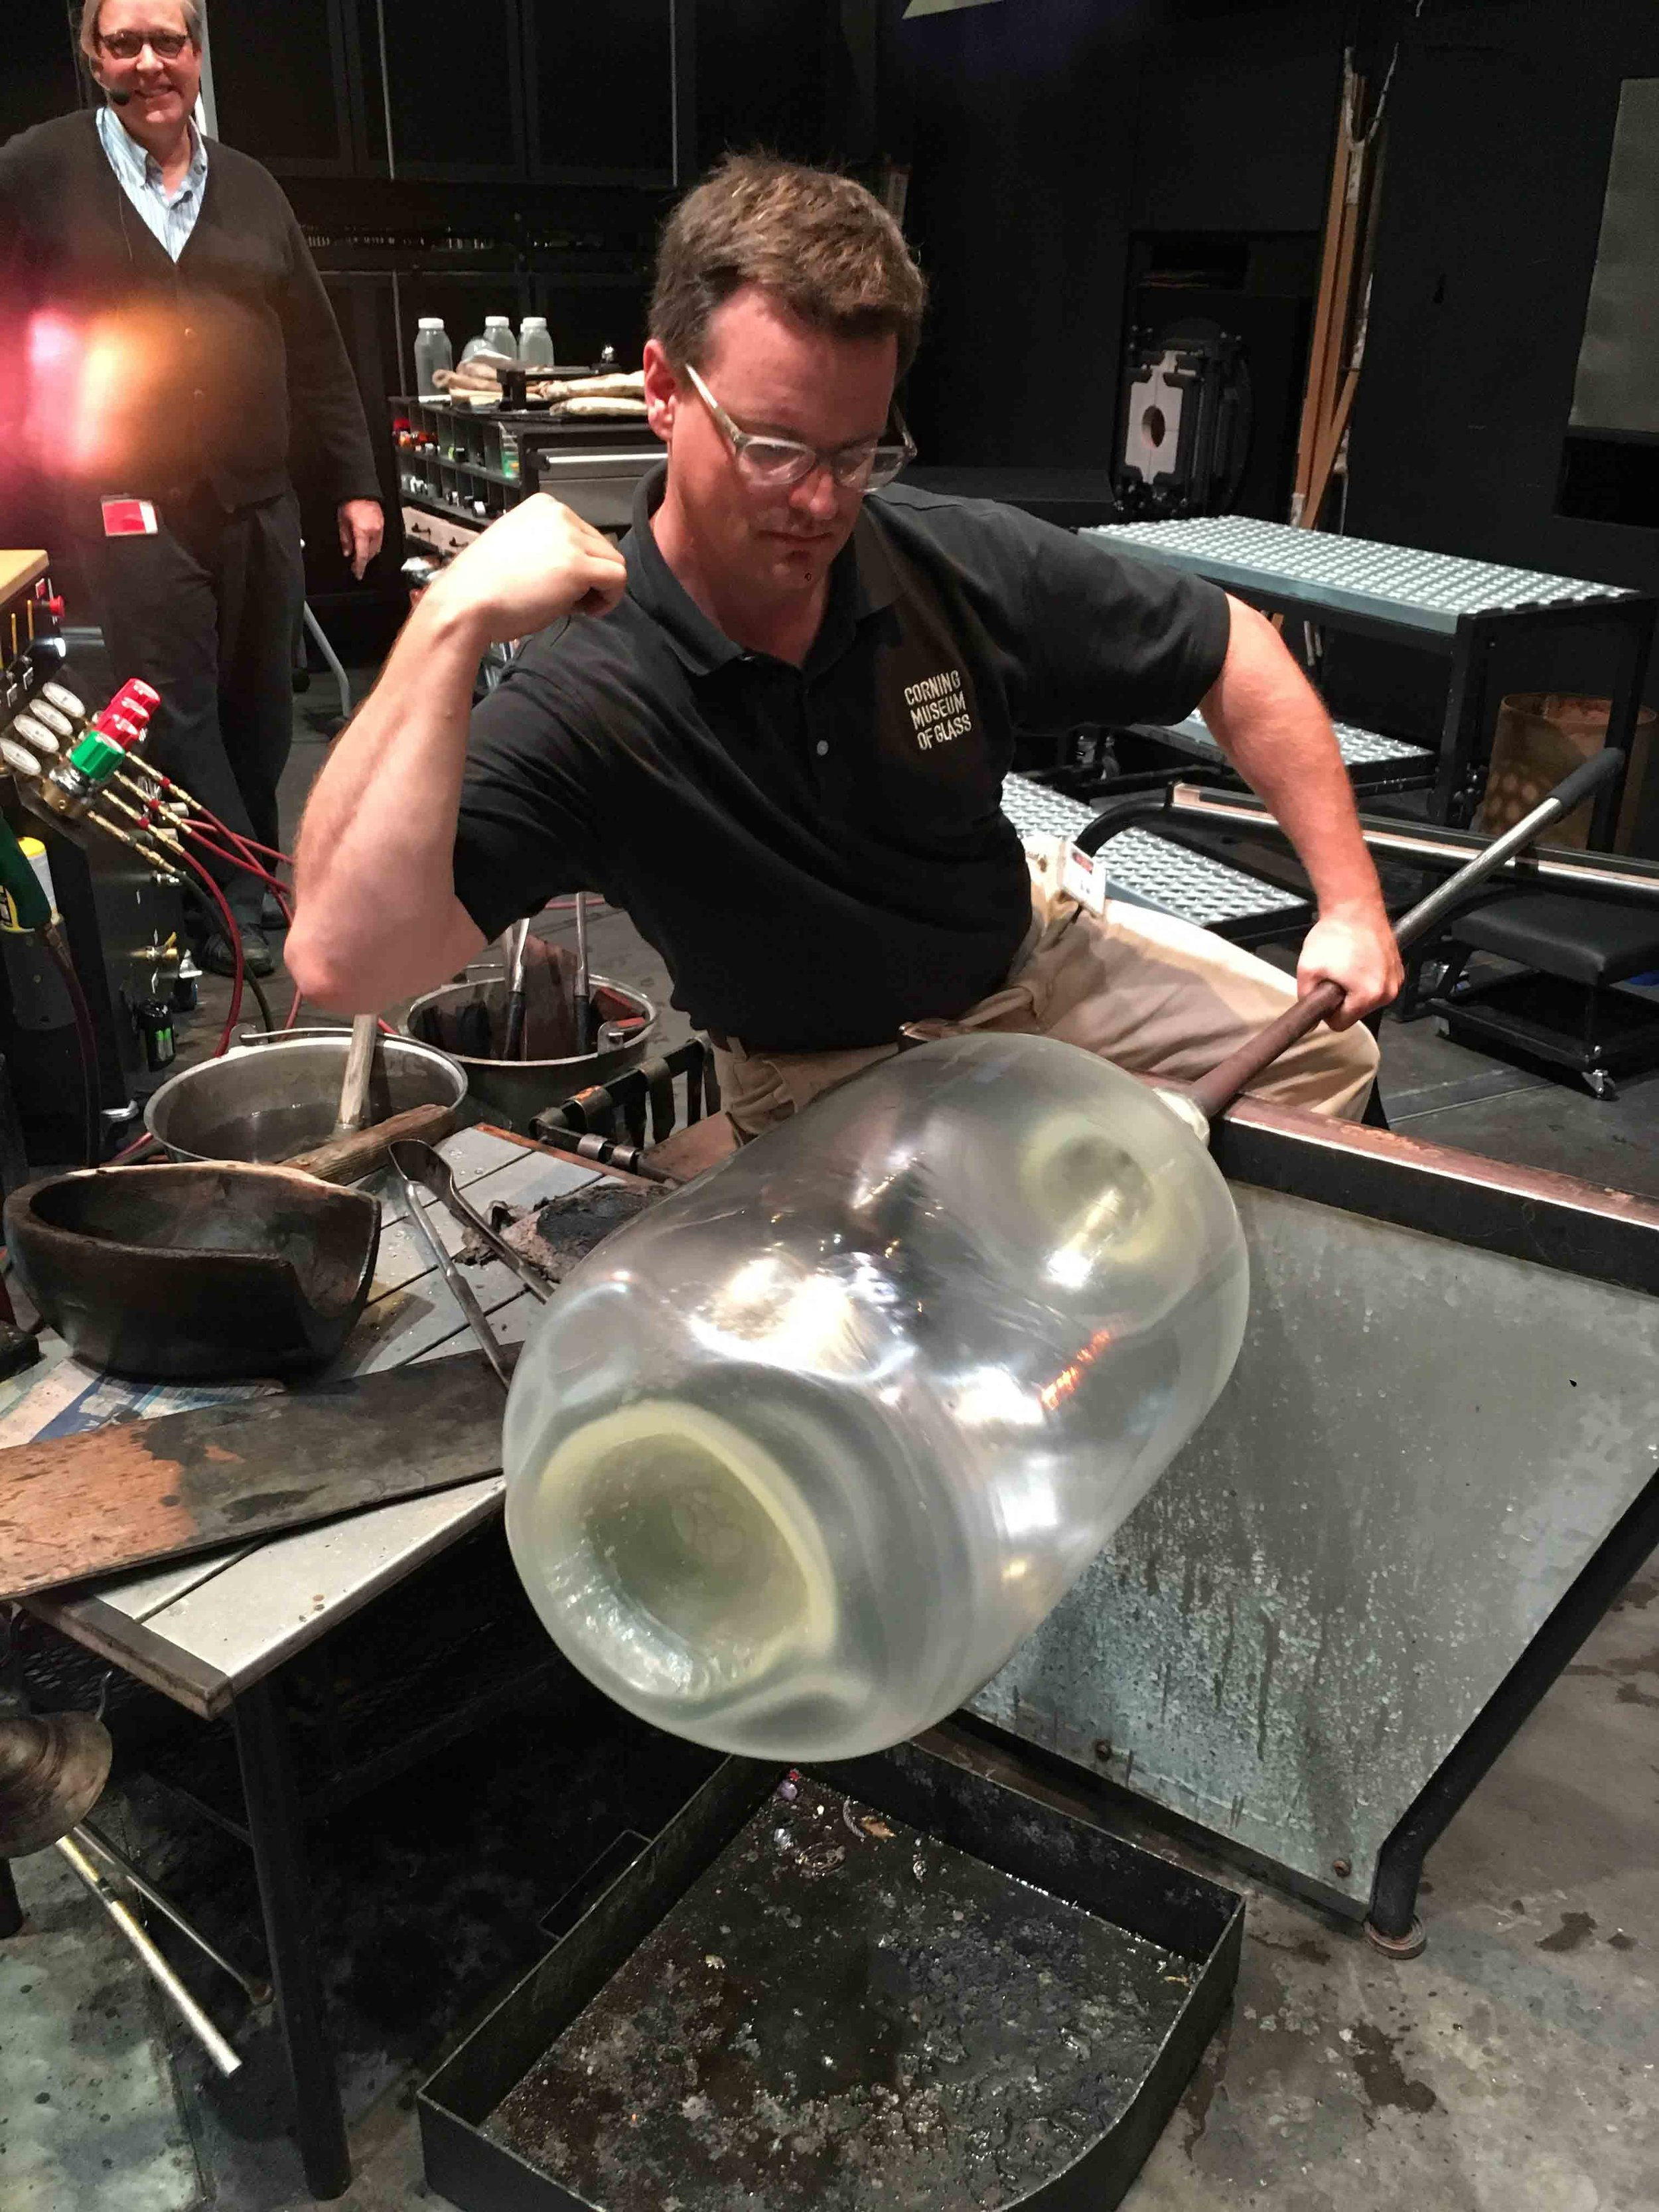 Jeff Mack with a blown form for round sections. Dr. Jane Cook, Chief Scientist at the Museum in the background